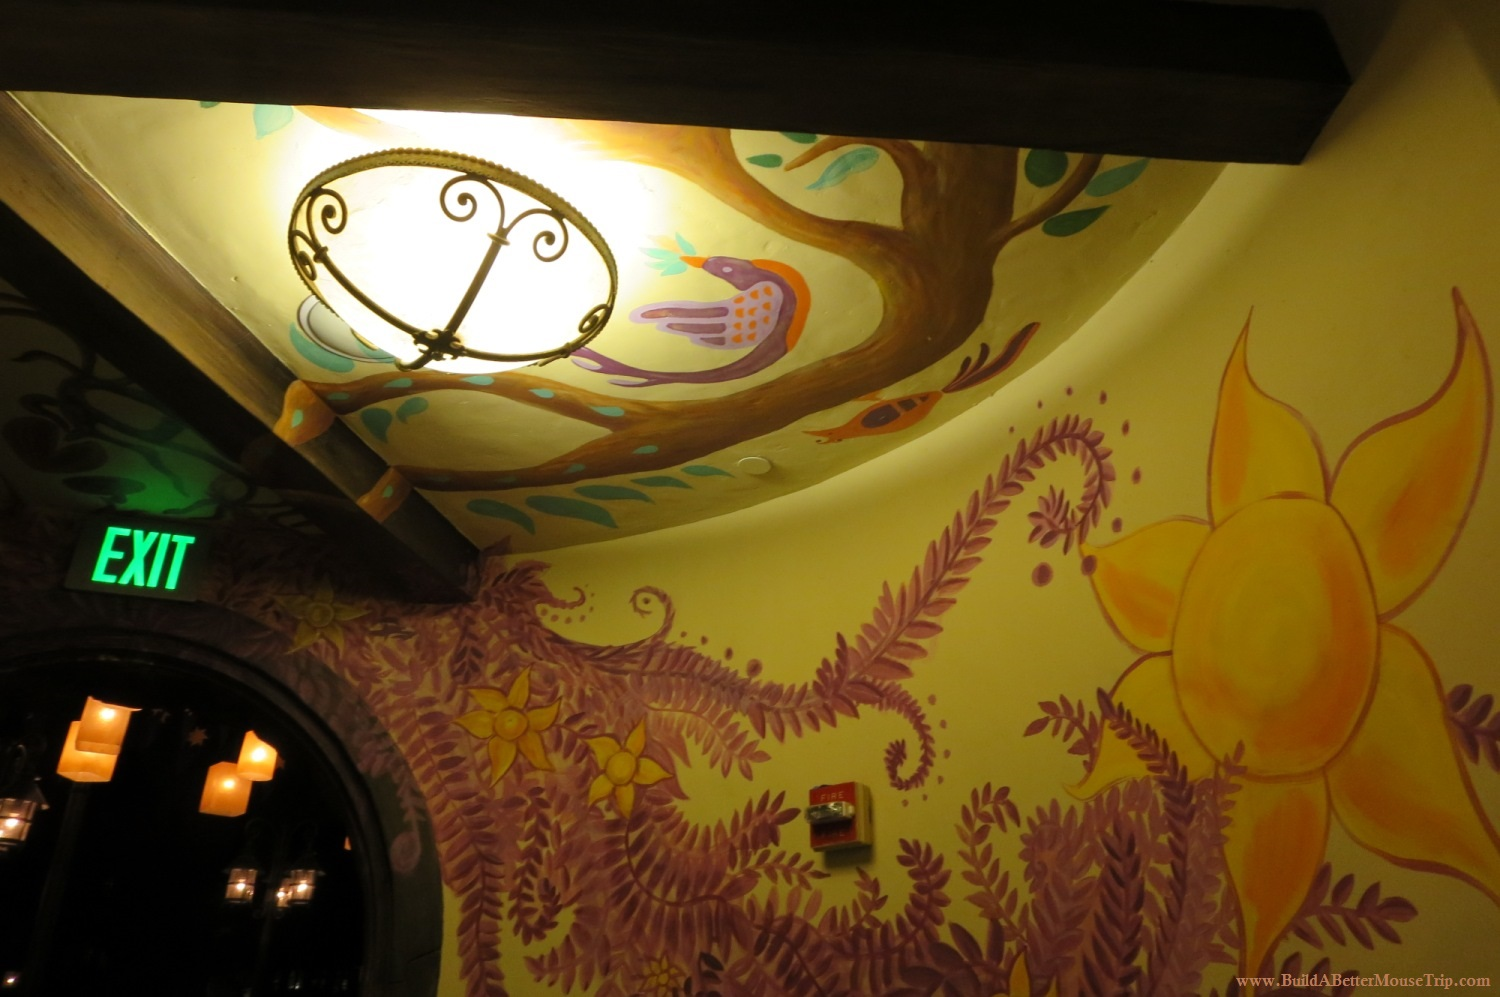 Tangled bathroom in the Magic Kingdom looks like it was decorated by Rapunzel.